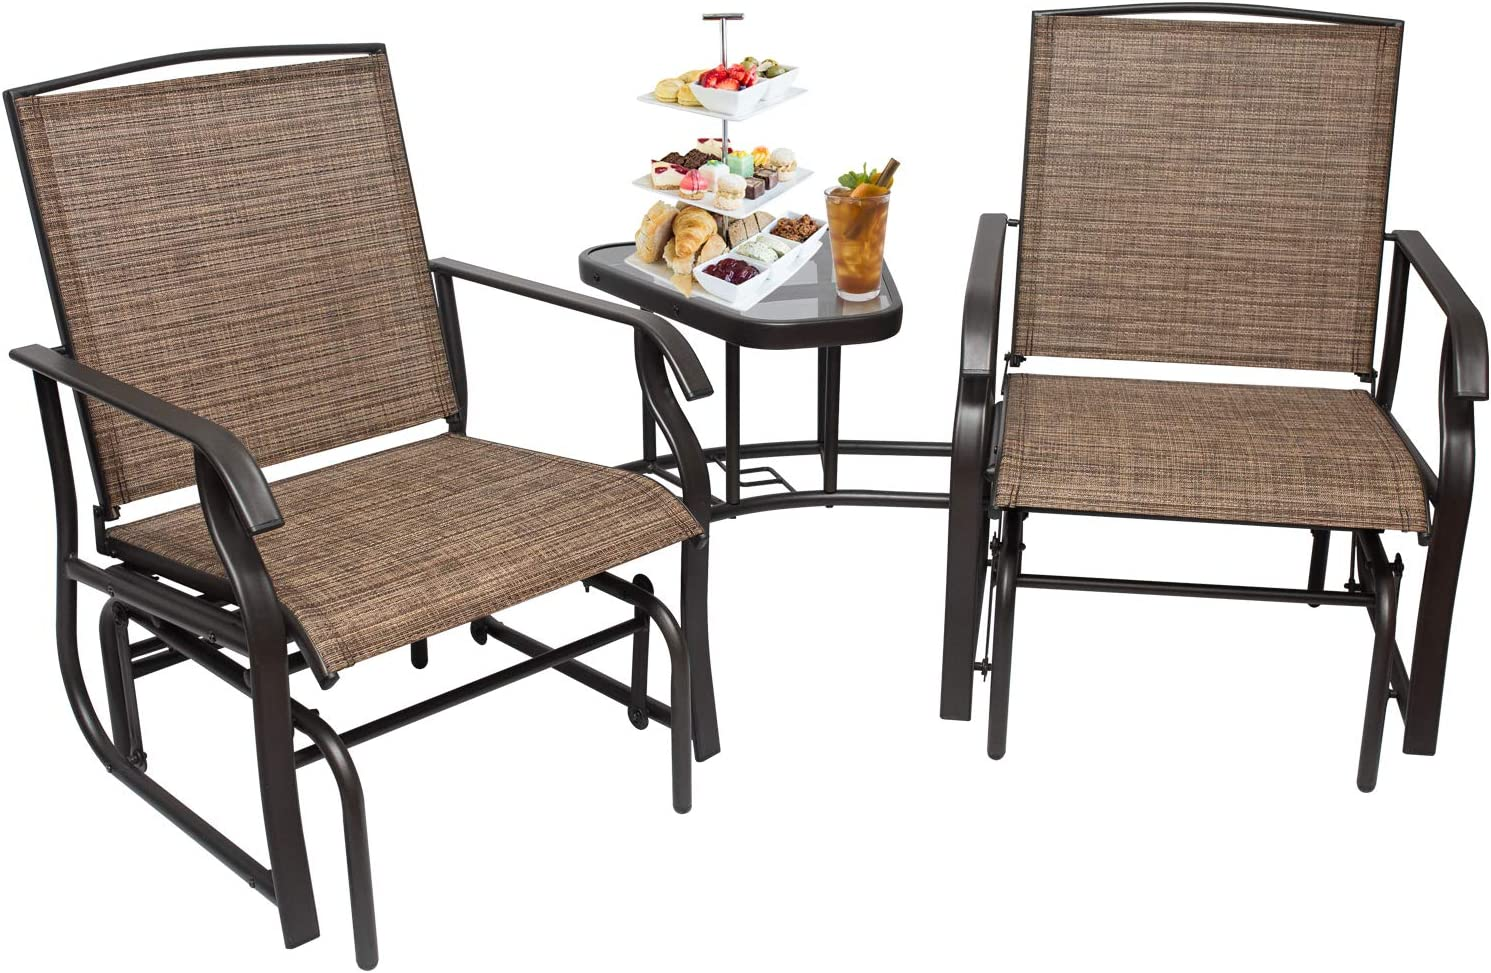 2-Person Outdoor Swing Glider Rocking Chair Patio Loveseat with Table, Patio Furniture Sets with Umbrella Hole for Garden, Porch,Backyard, Poolside, Lawn, Balcony (2 Person Chair)